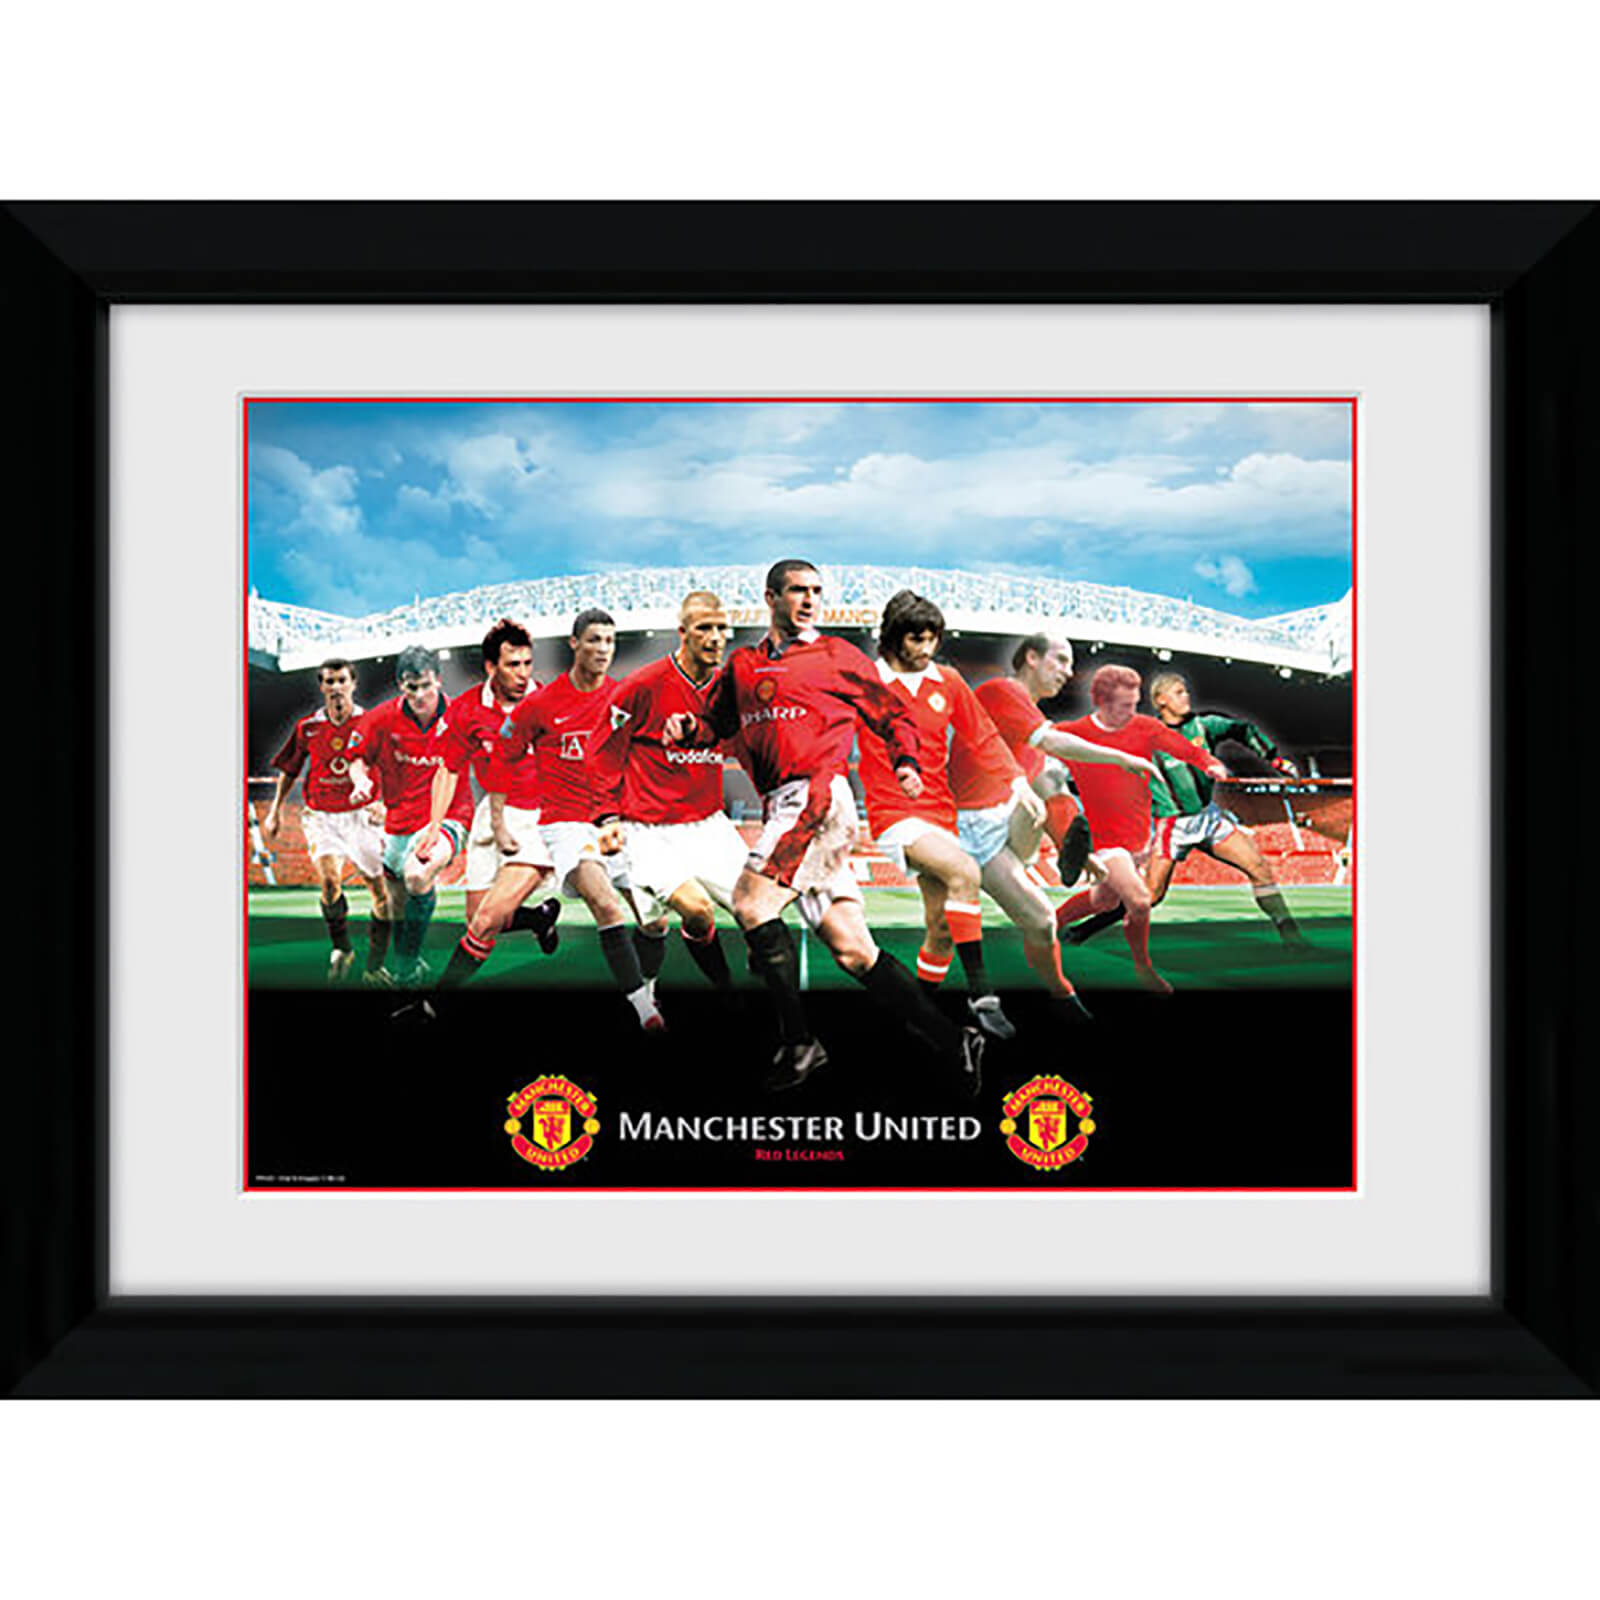 Manchester United Legends Framed Photograph 8 x 6 Inch